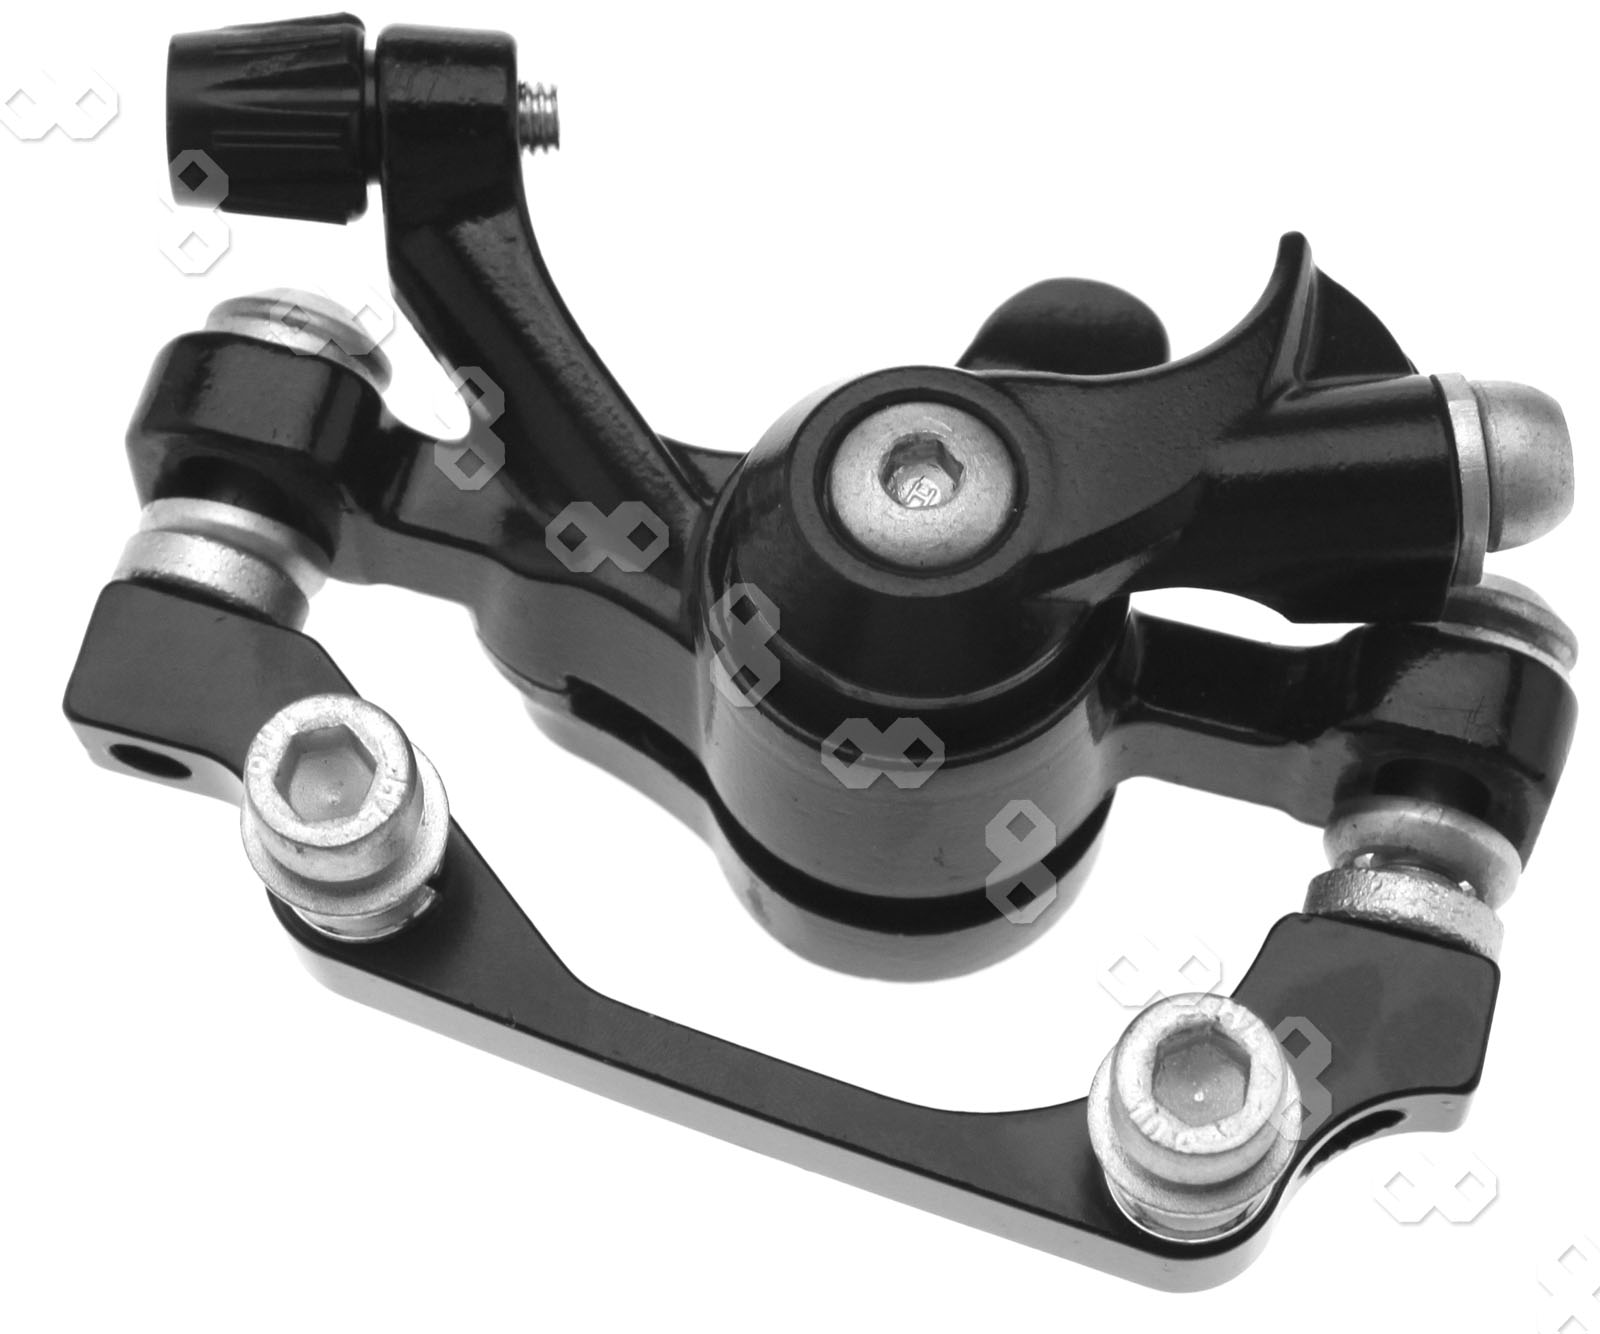 Front Disc Brake Caliper Support Spring Set: Front Rear Bicycle Caliper 160mm MTB Cycling Bicycle Bike